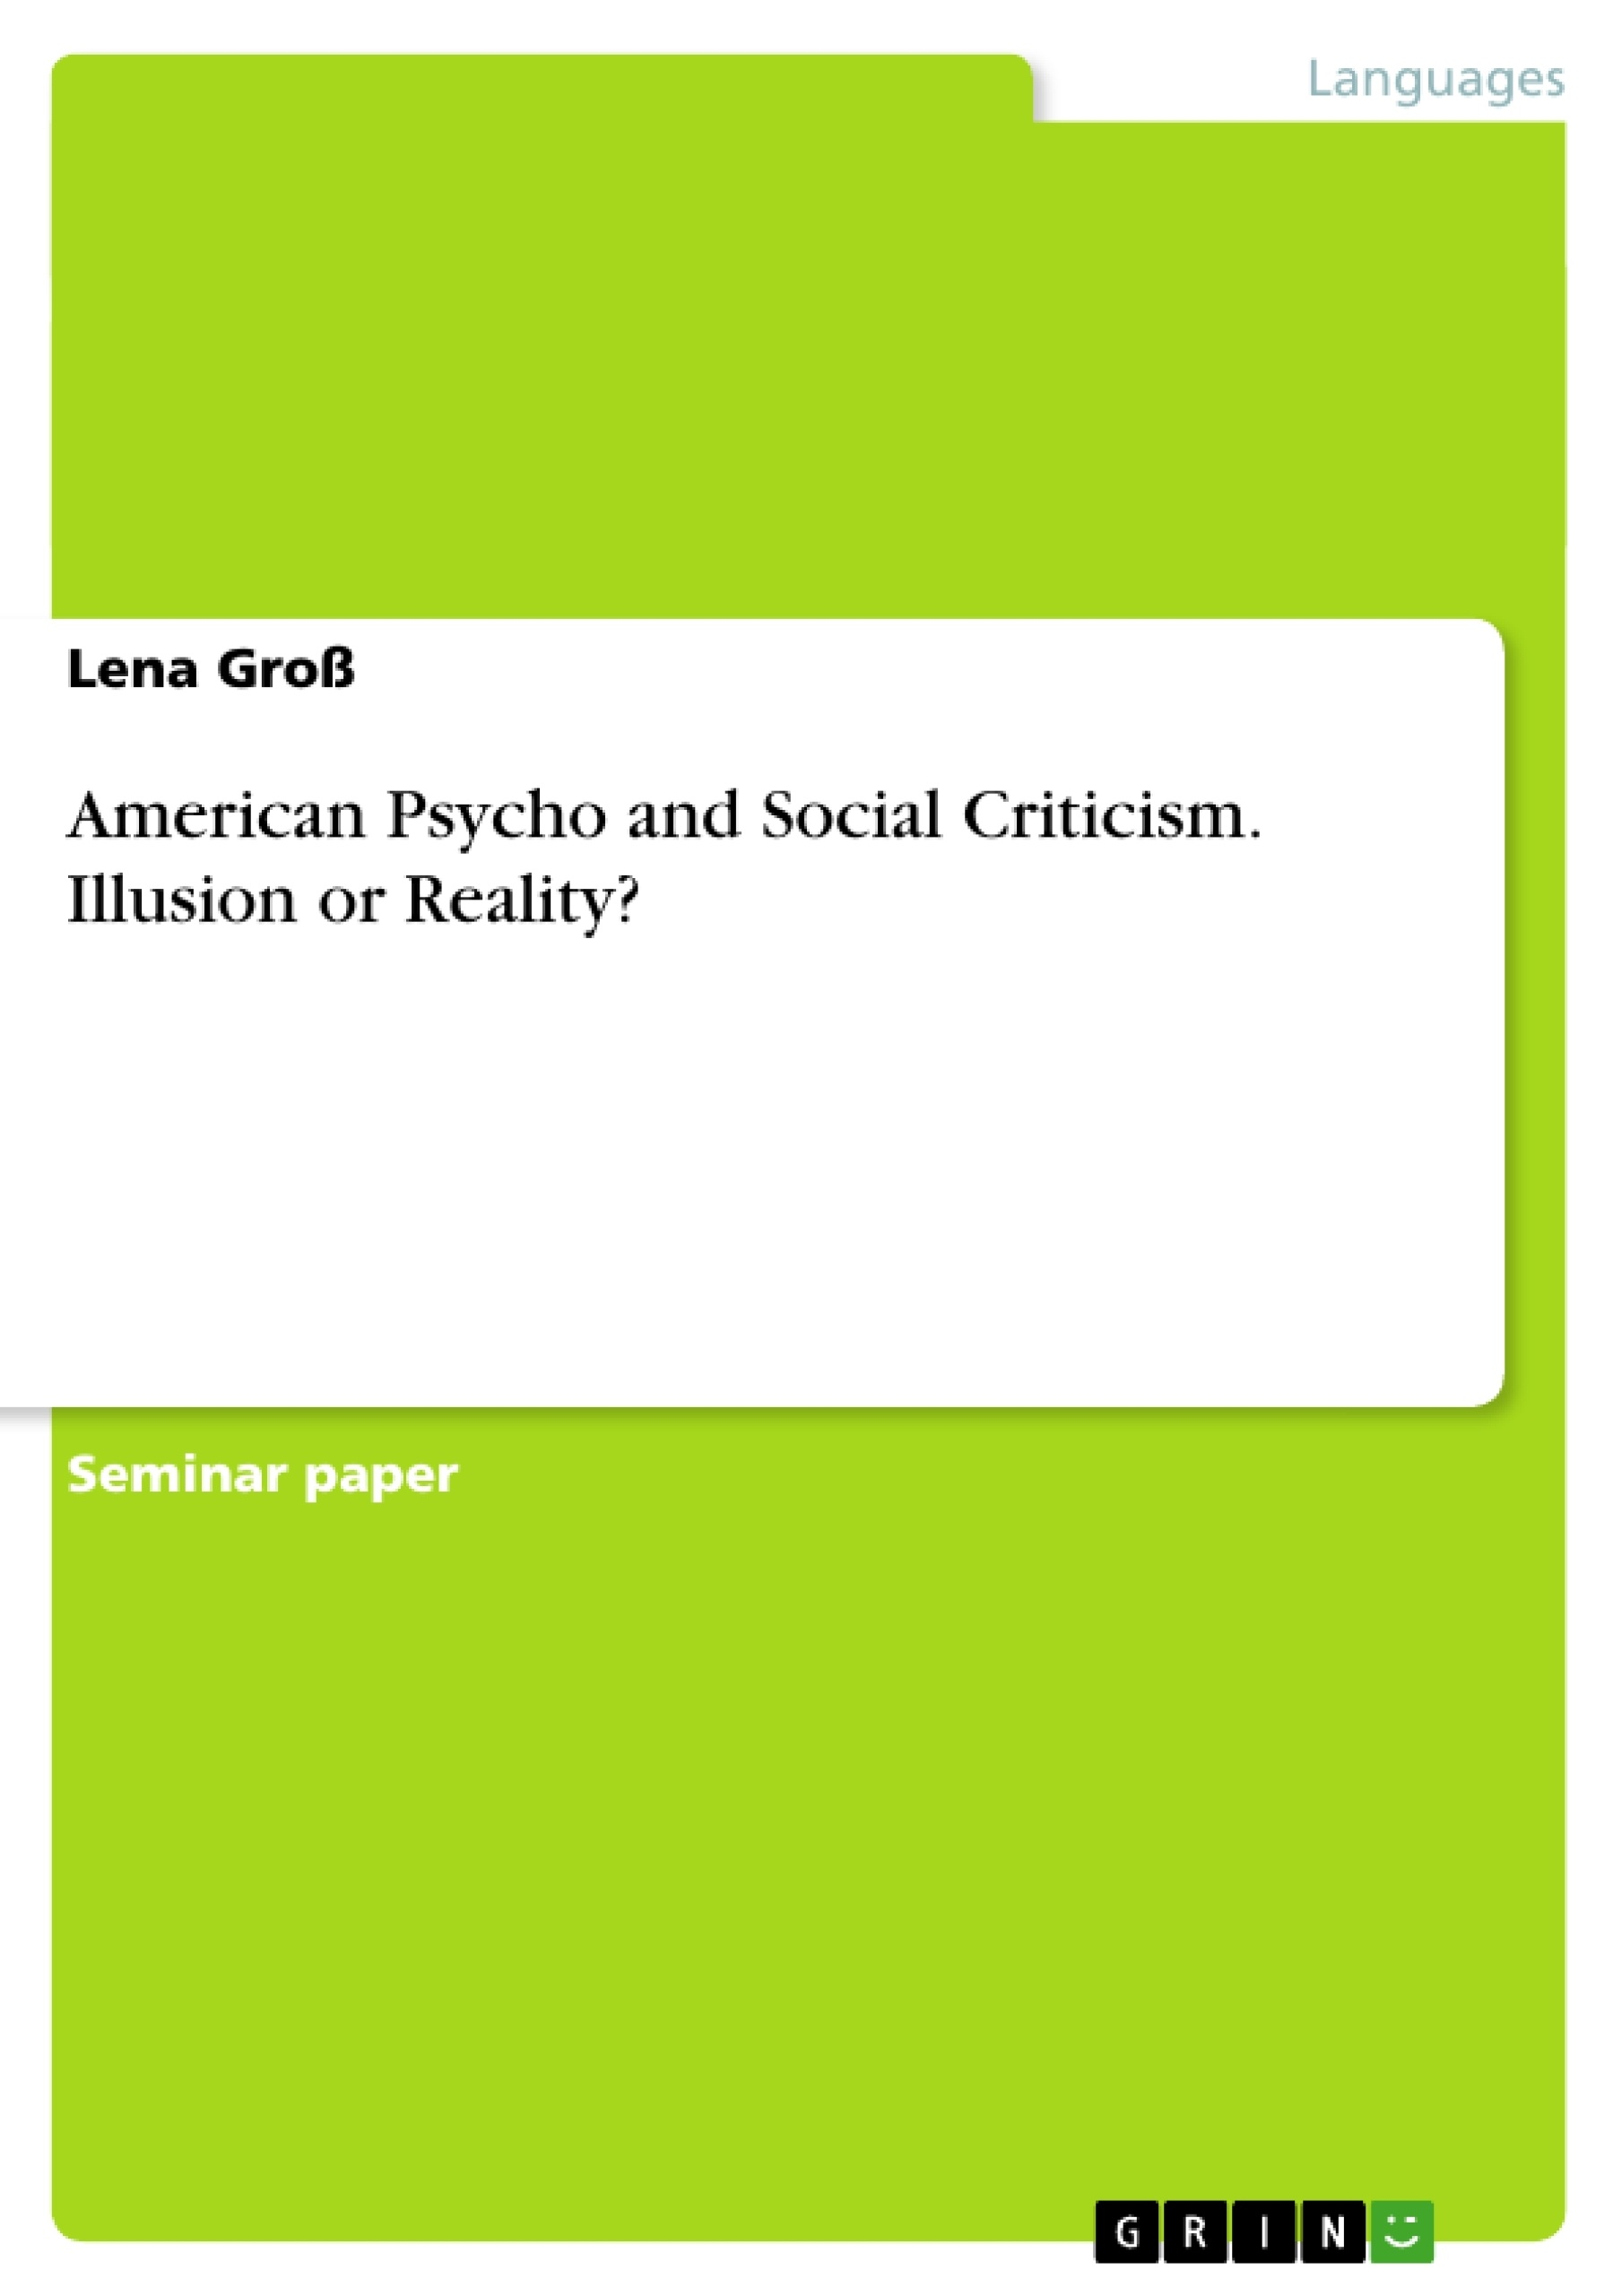 Title: American Psycho and Social Criticism. Illusion or Reality?